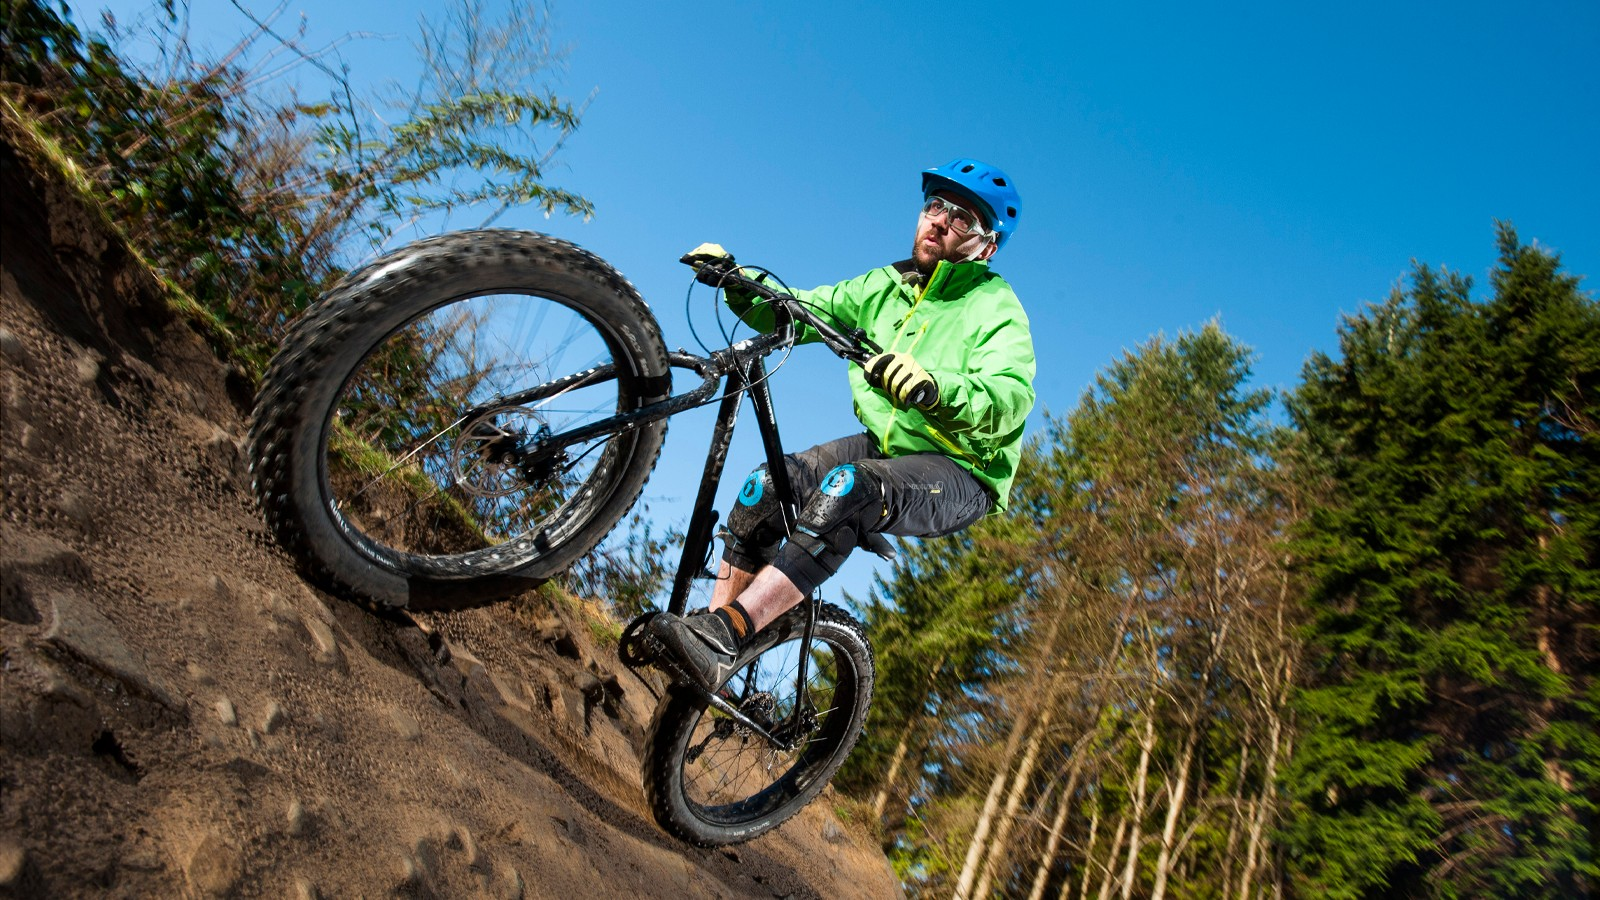 Matt rails a rocky berm on the Forest of Dean's Verderer's trail